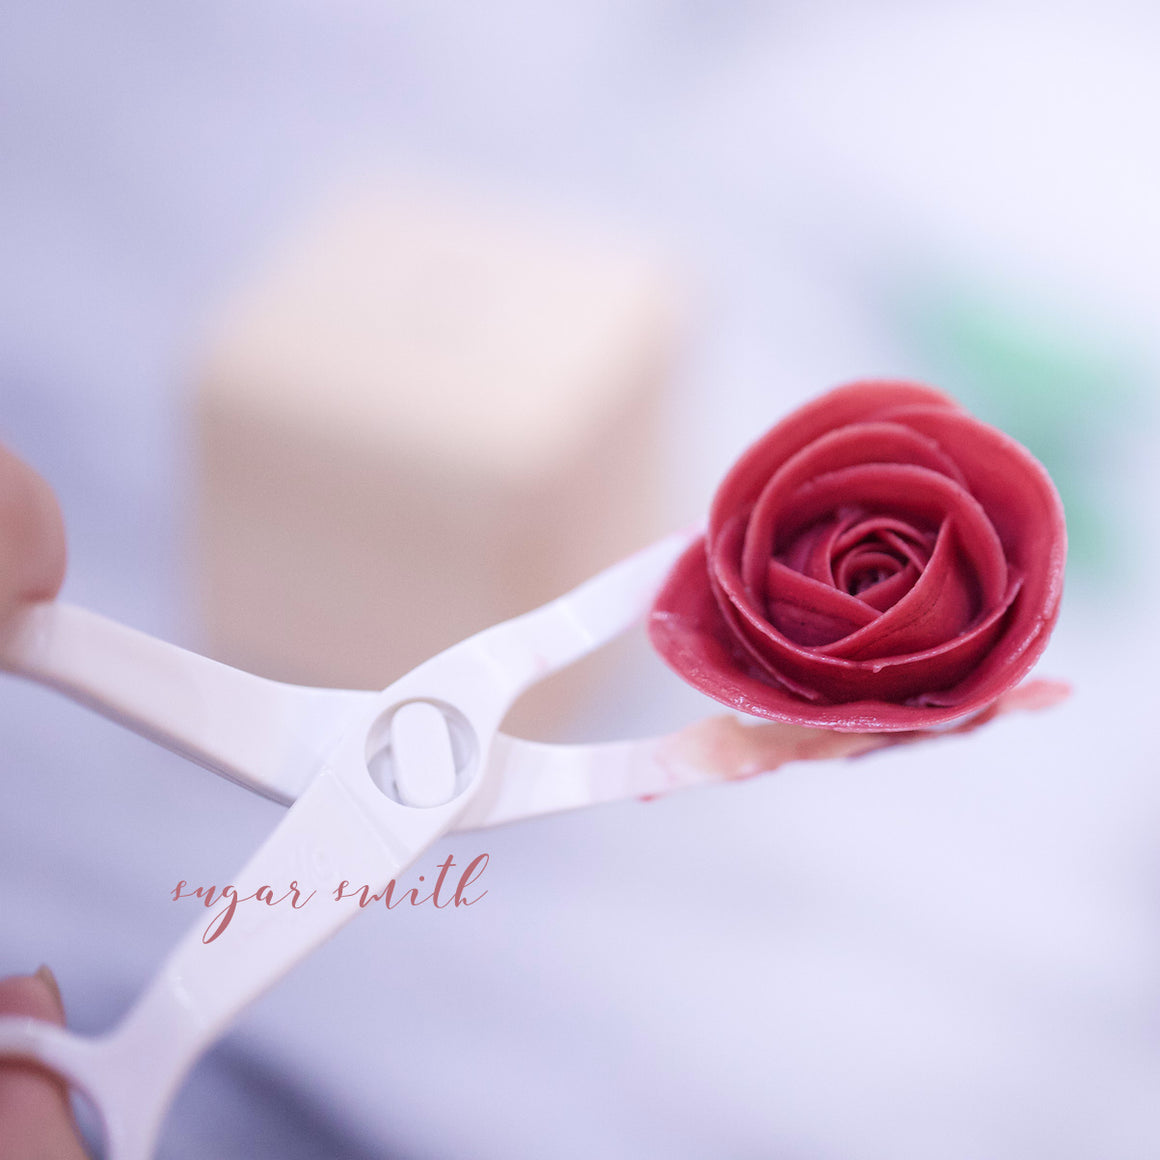 Sugar Smith Inc - Korea Buttercream Flower Scissor